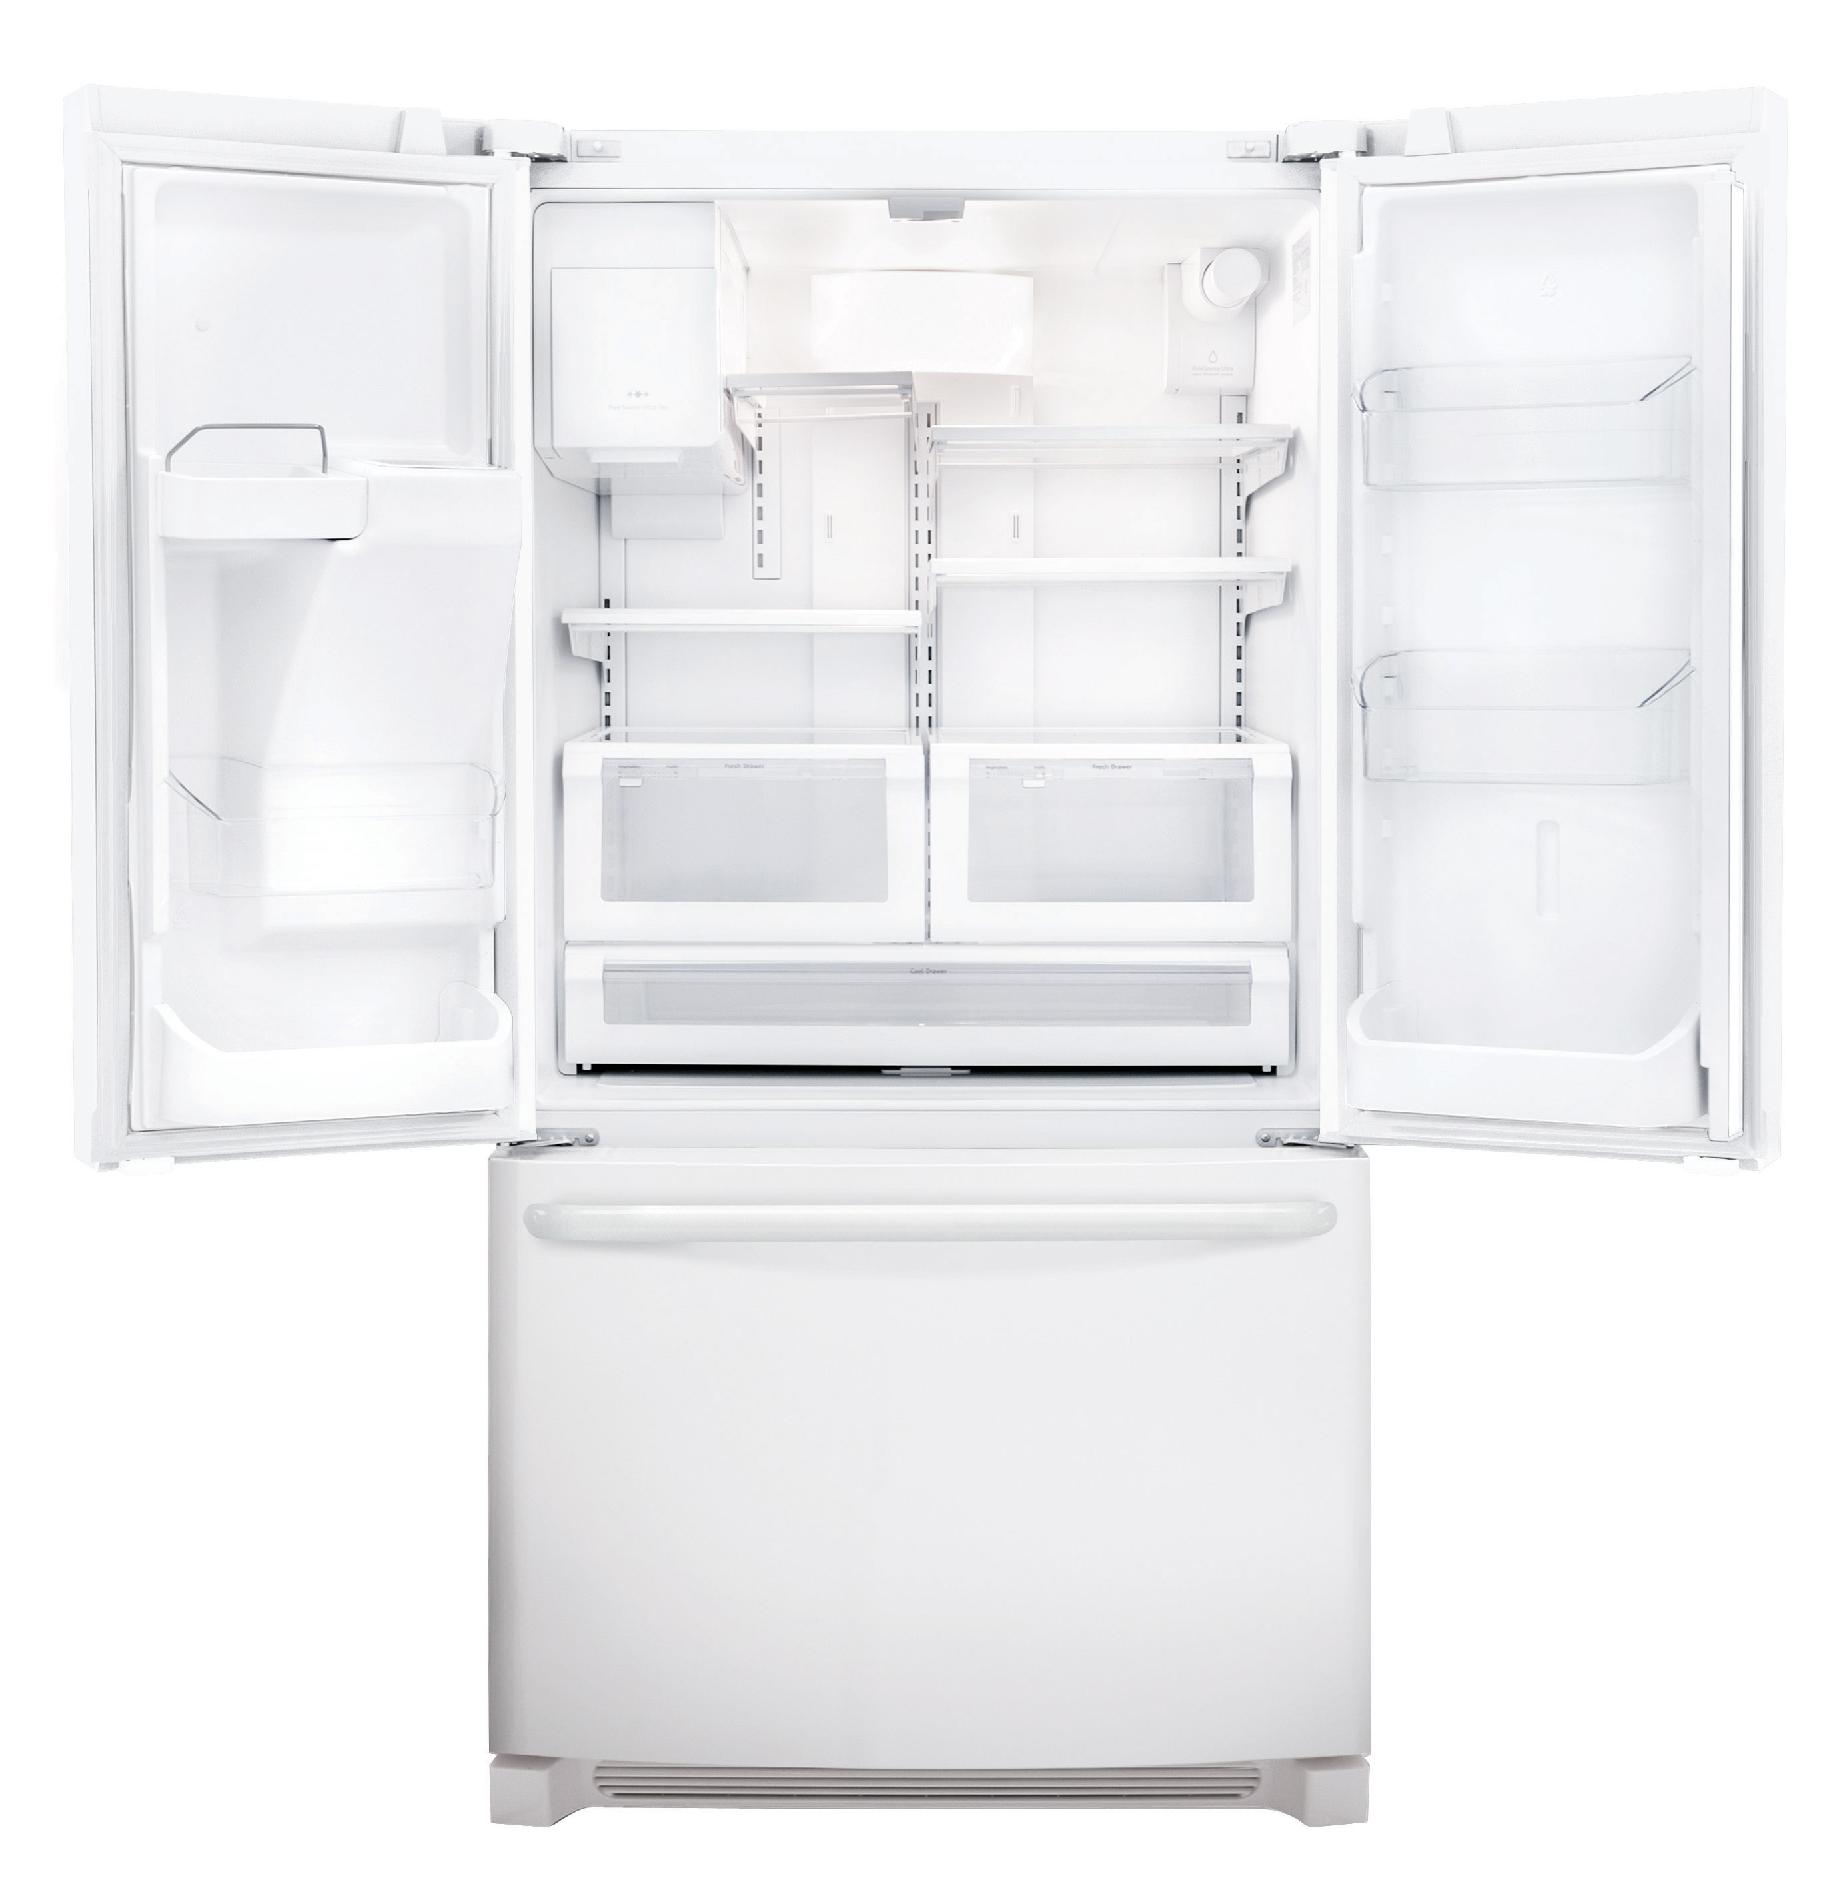 Frigidaire 26.7 cu. ft. French Door Refrigerator - Pearl White